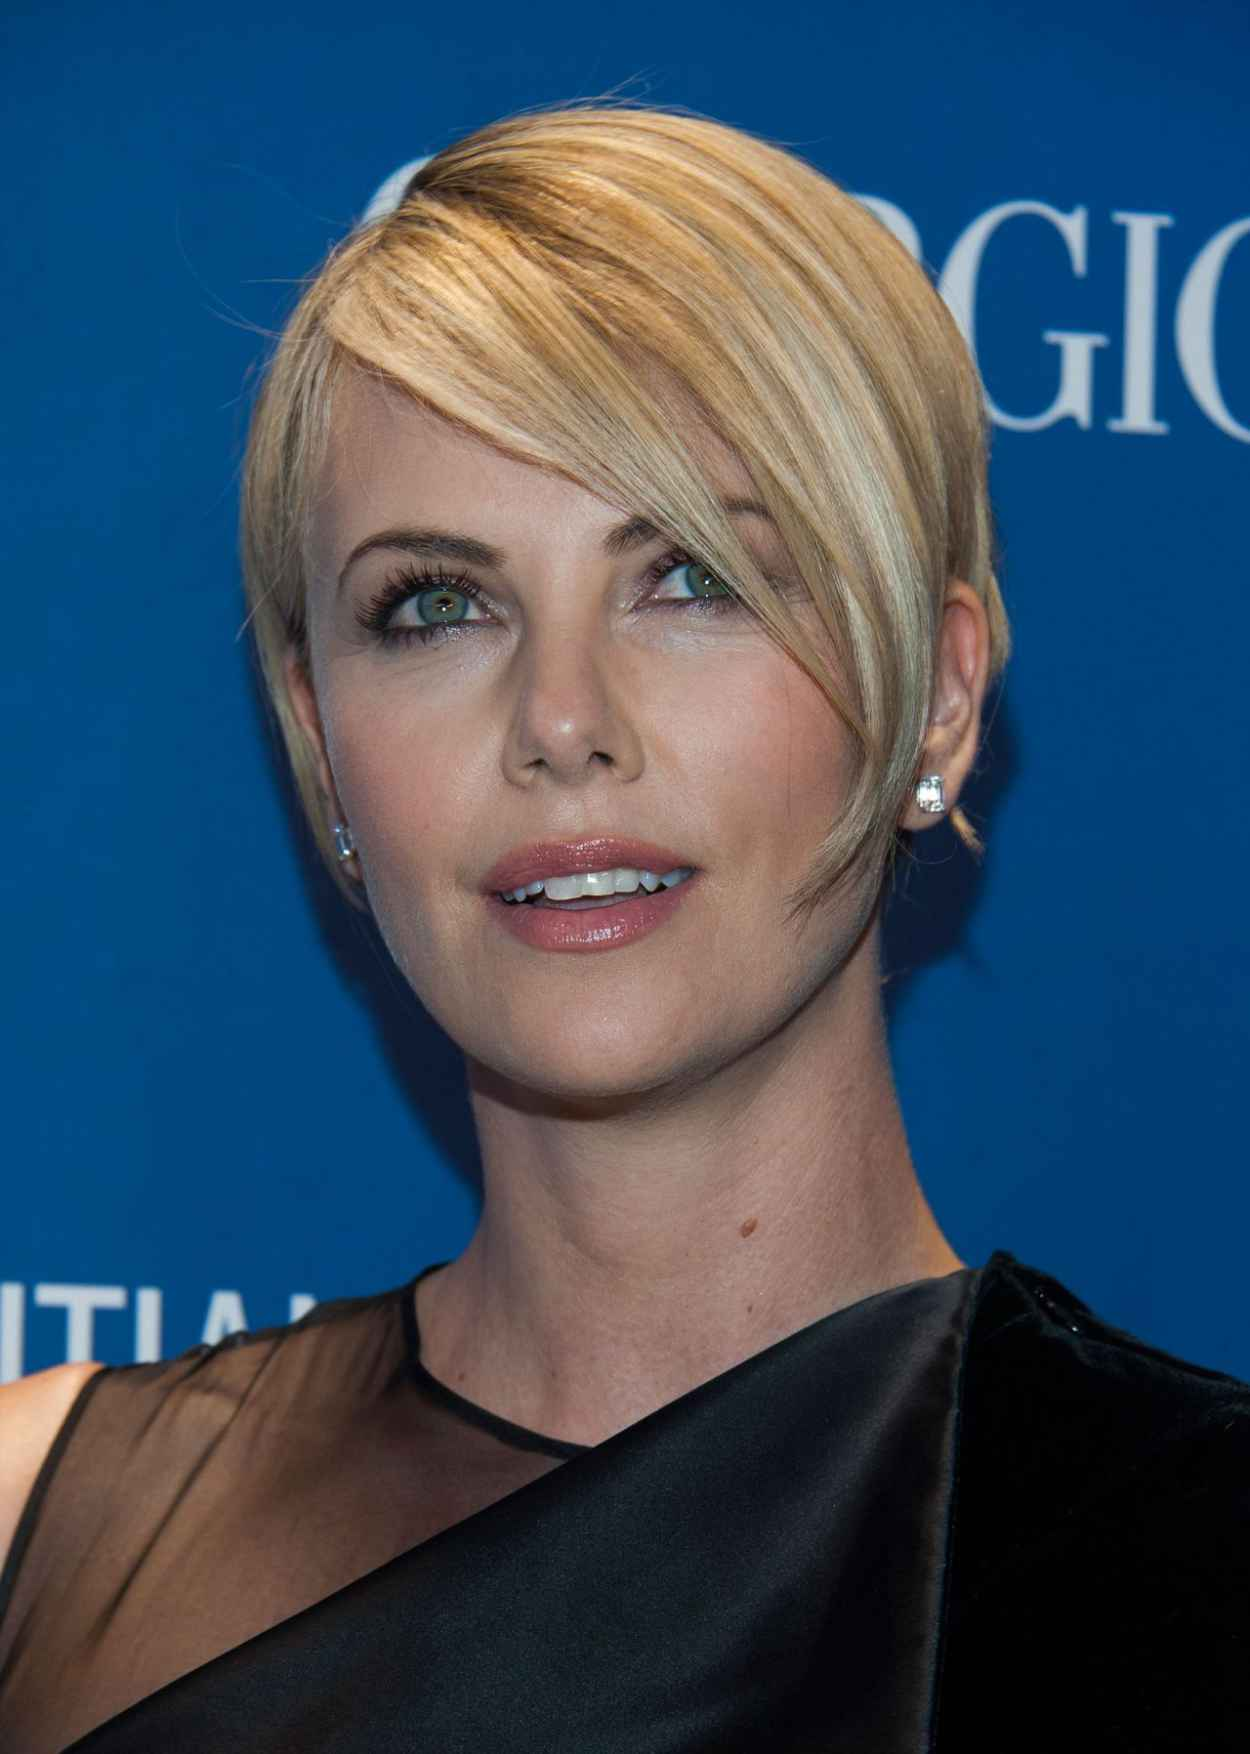 Charlize Theron Wearing Givenchy Dress at Sean Penn & Friends Help Haiti Home Gala, January 2015-1